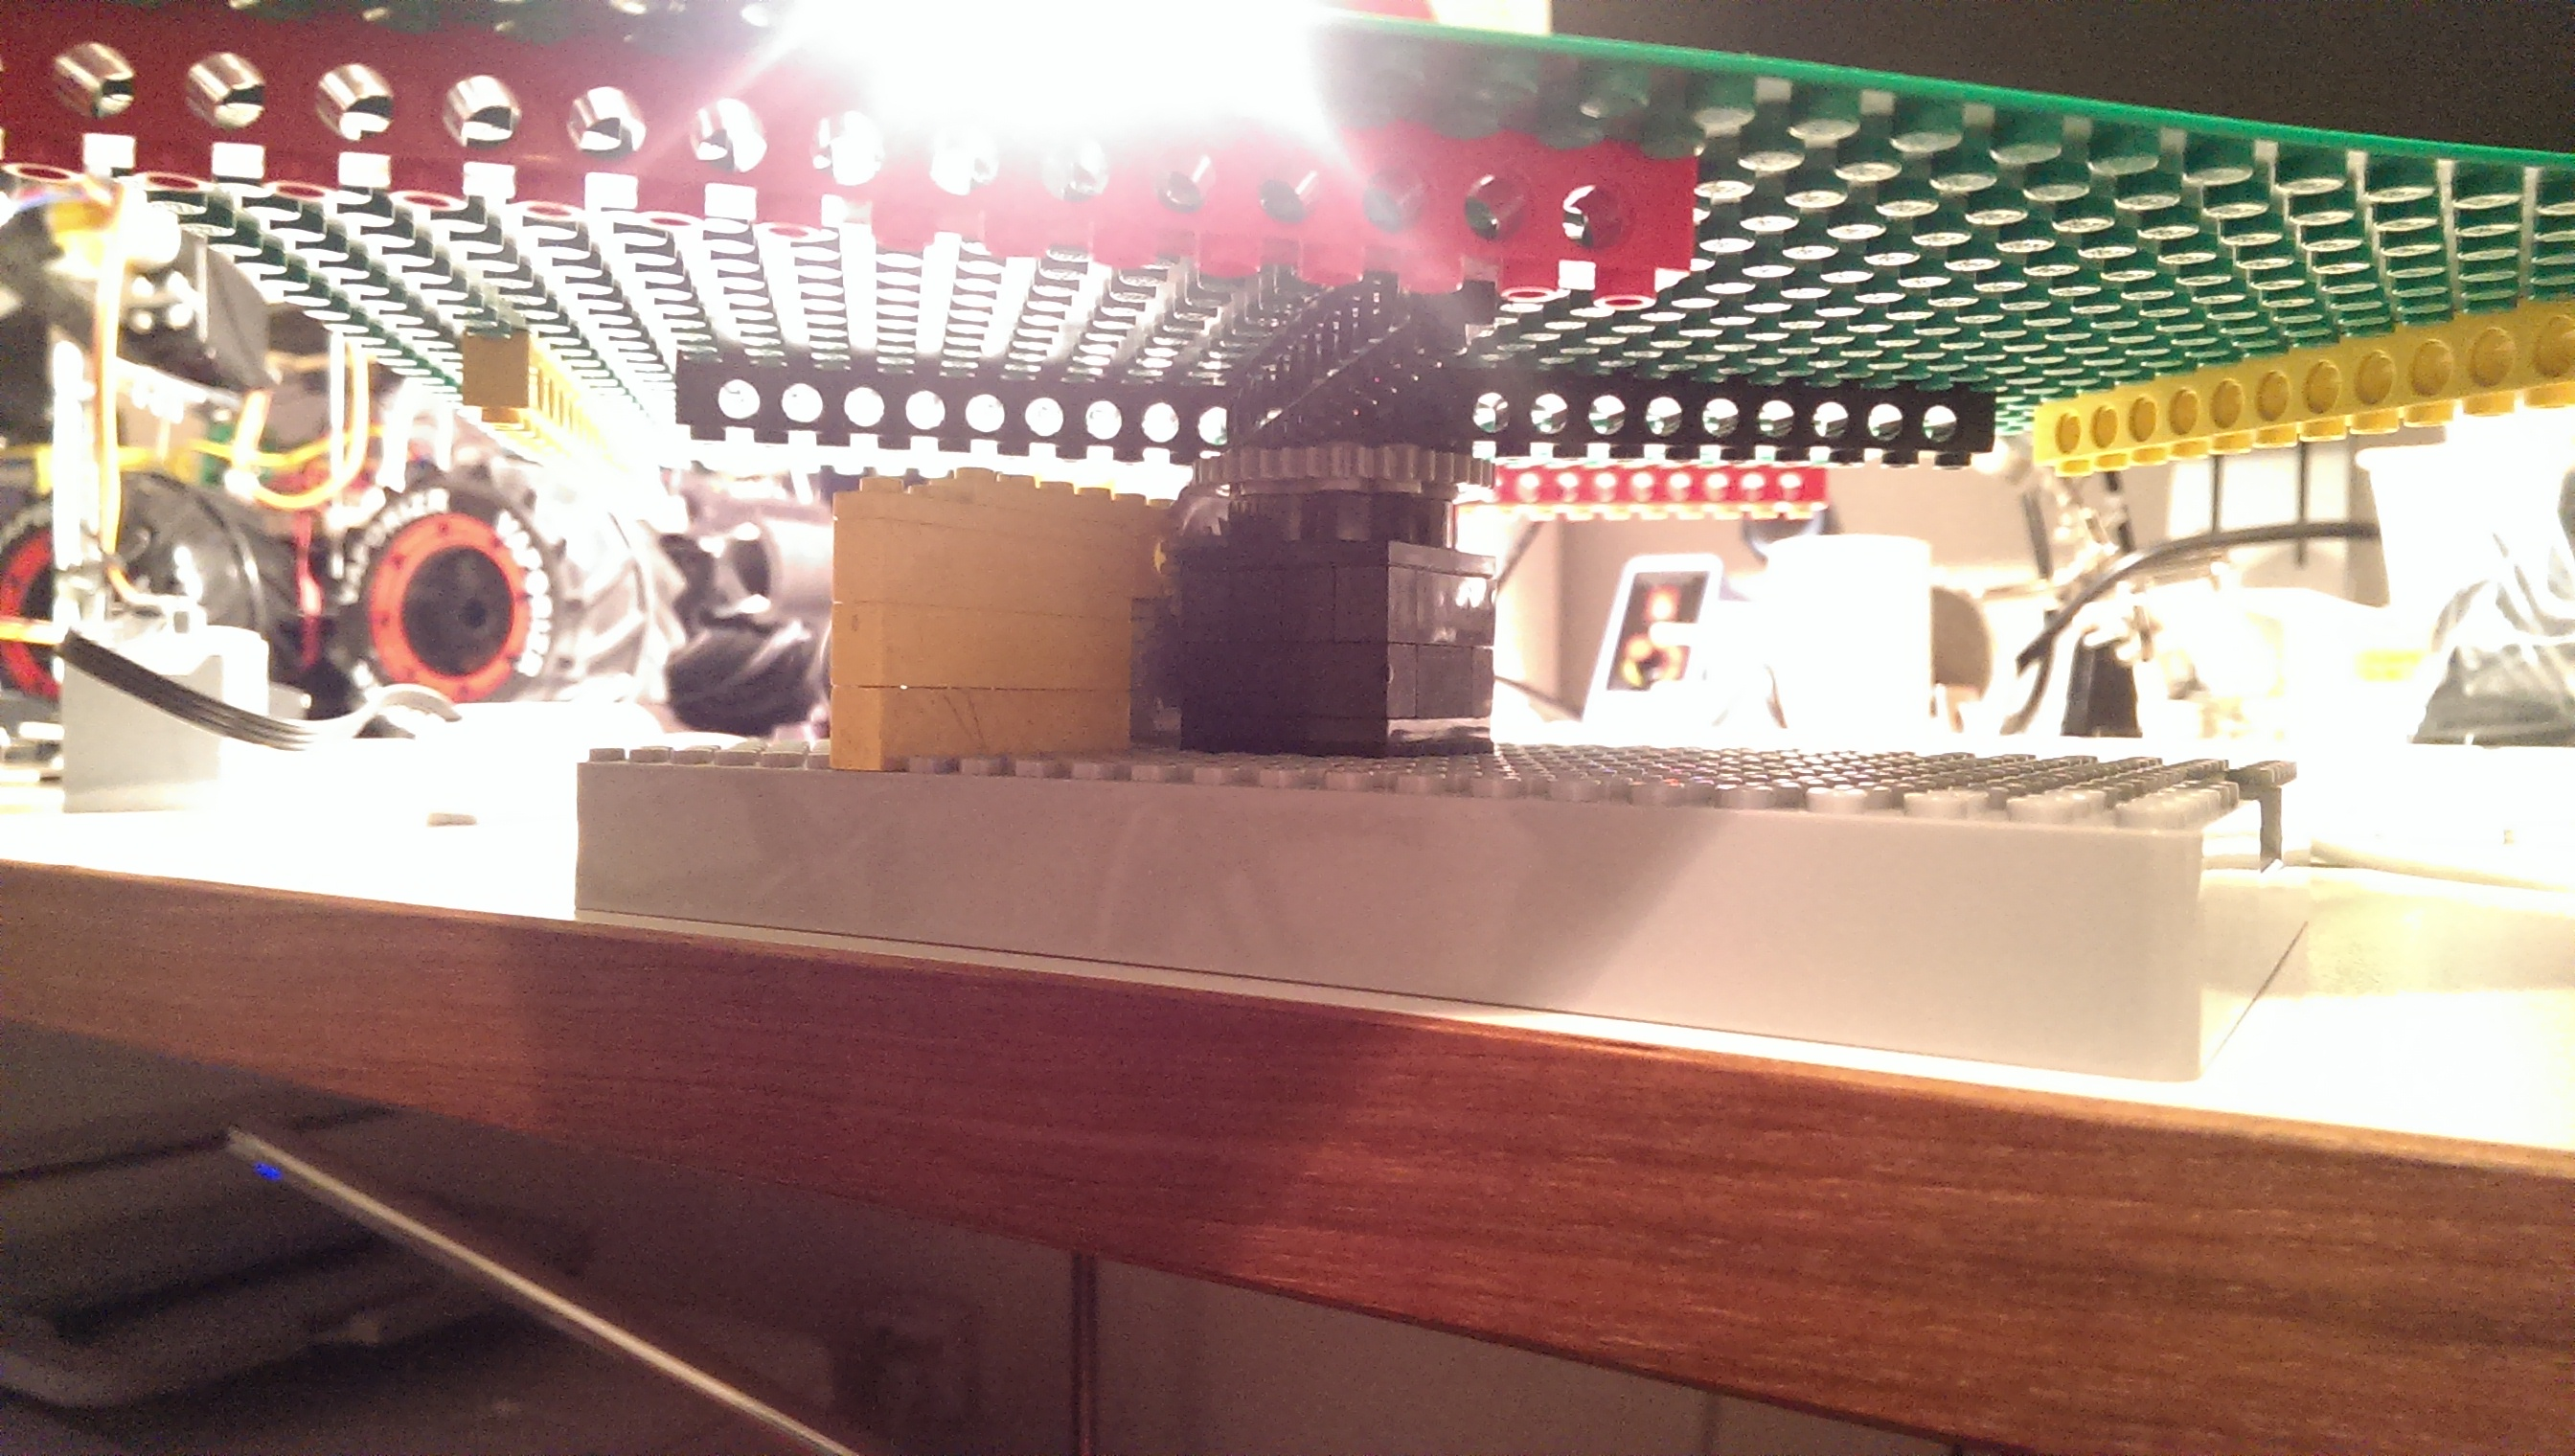 lego stand composed